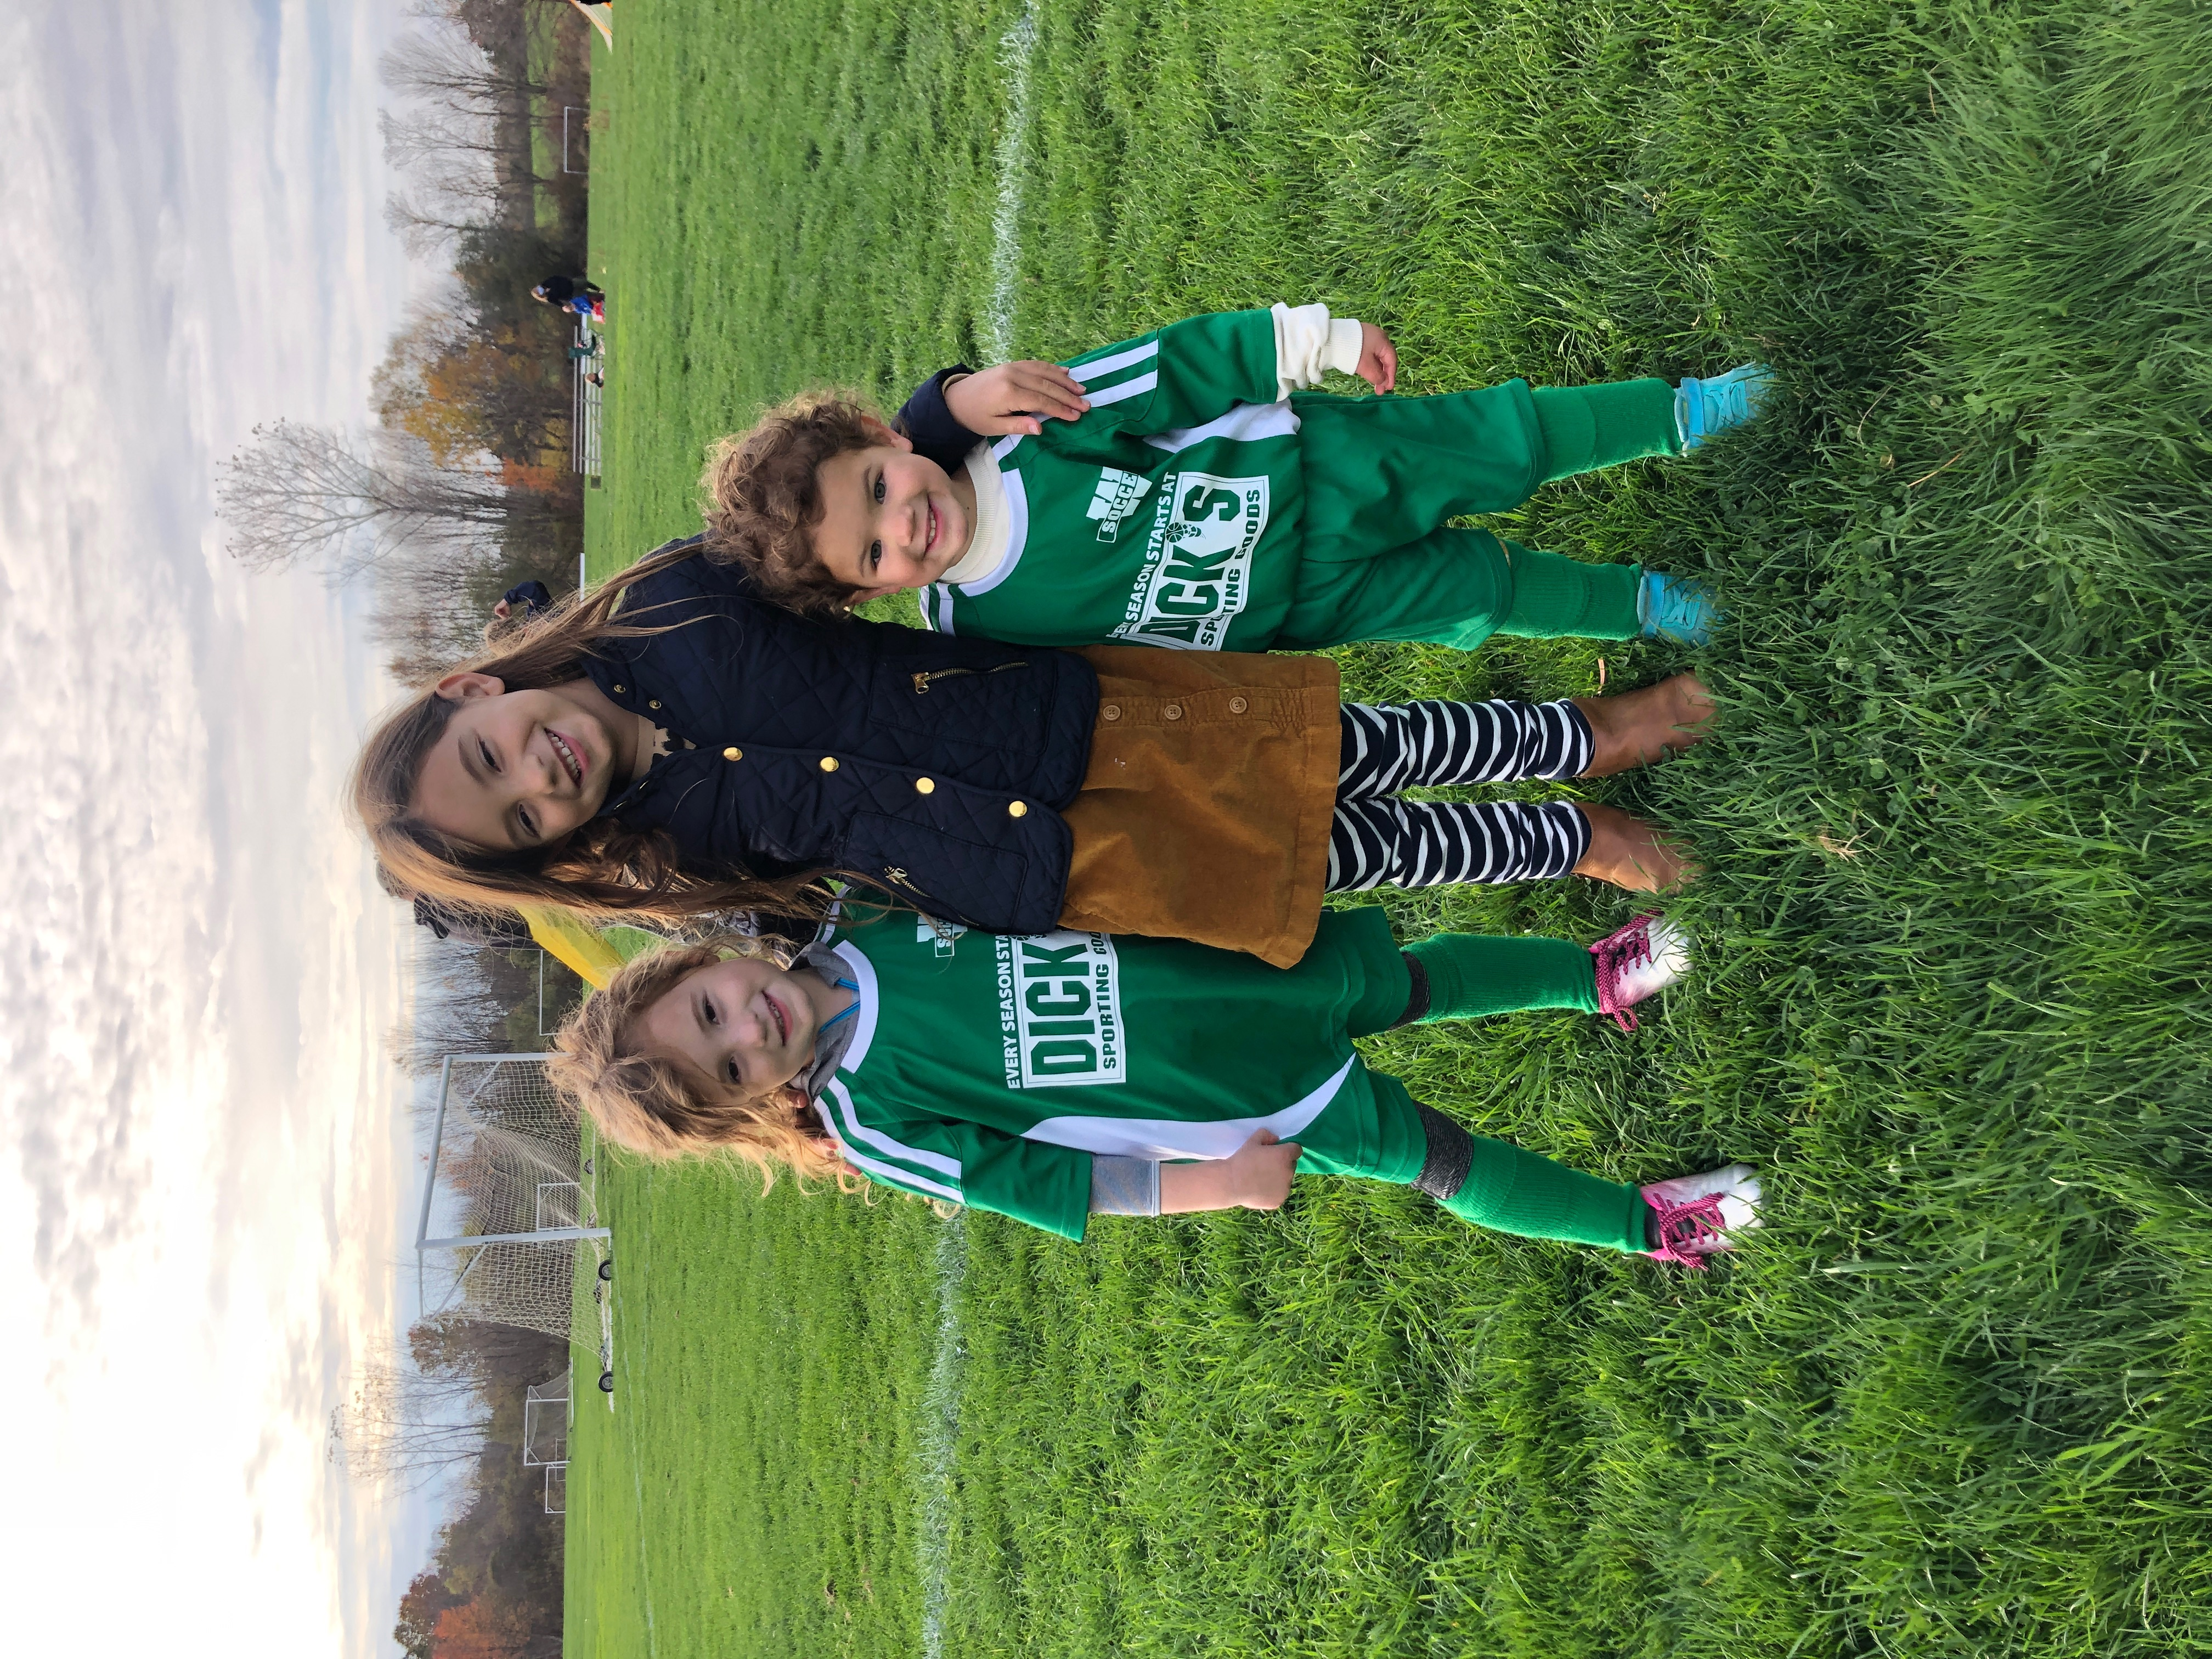 cousins at soccer practice october 2020